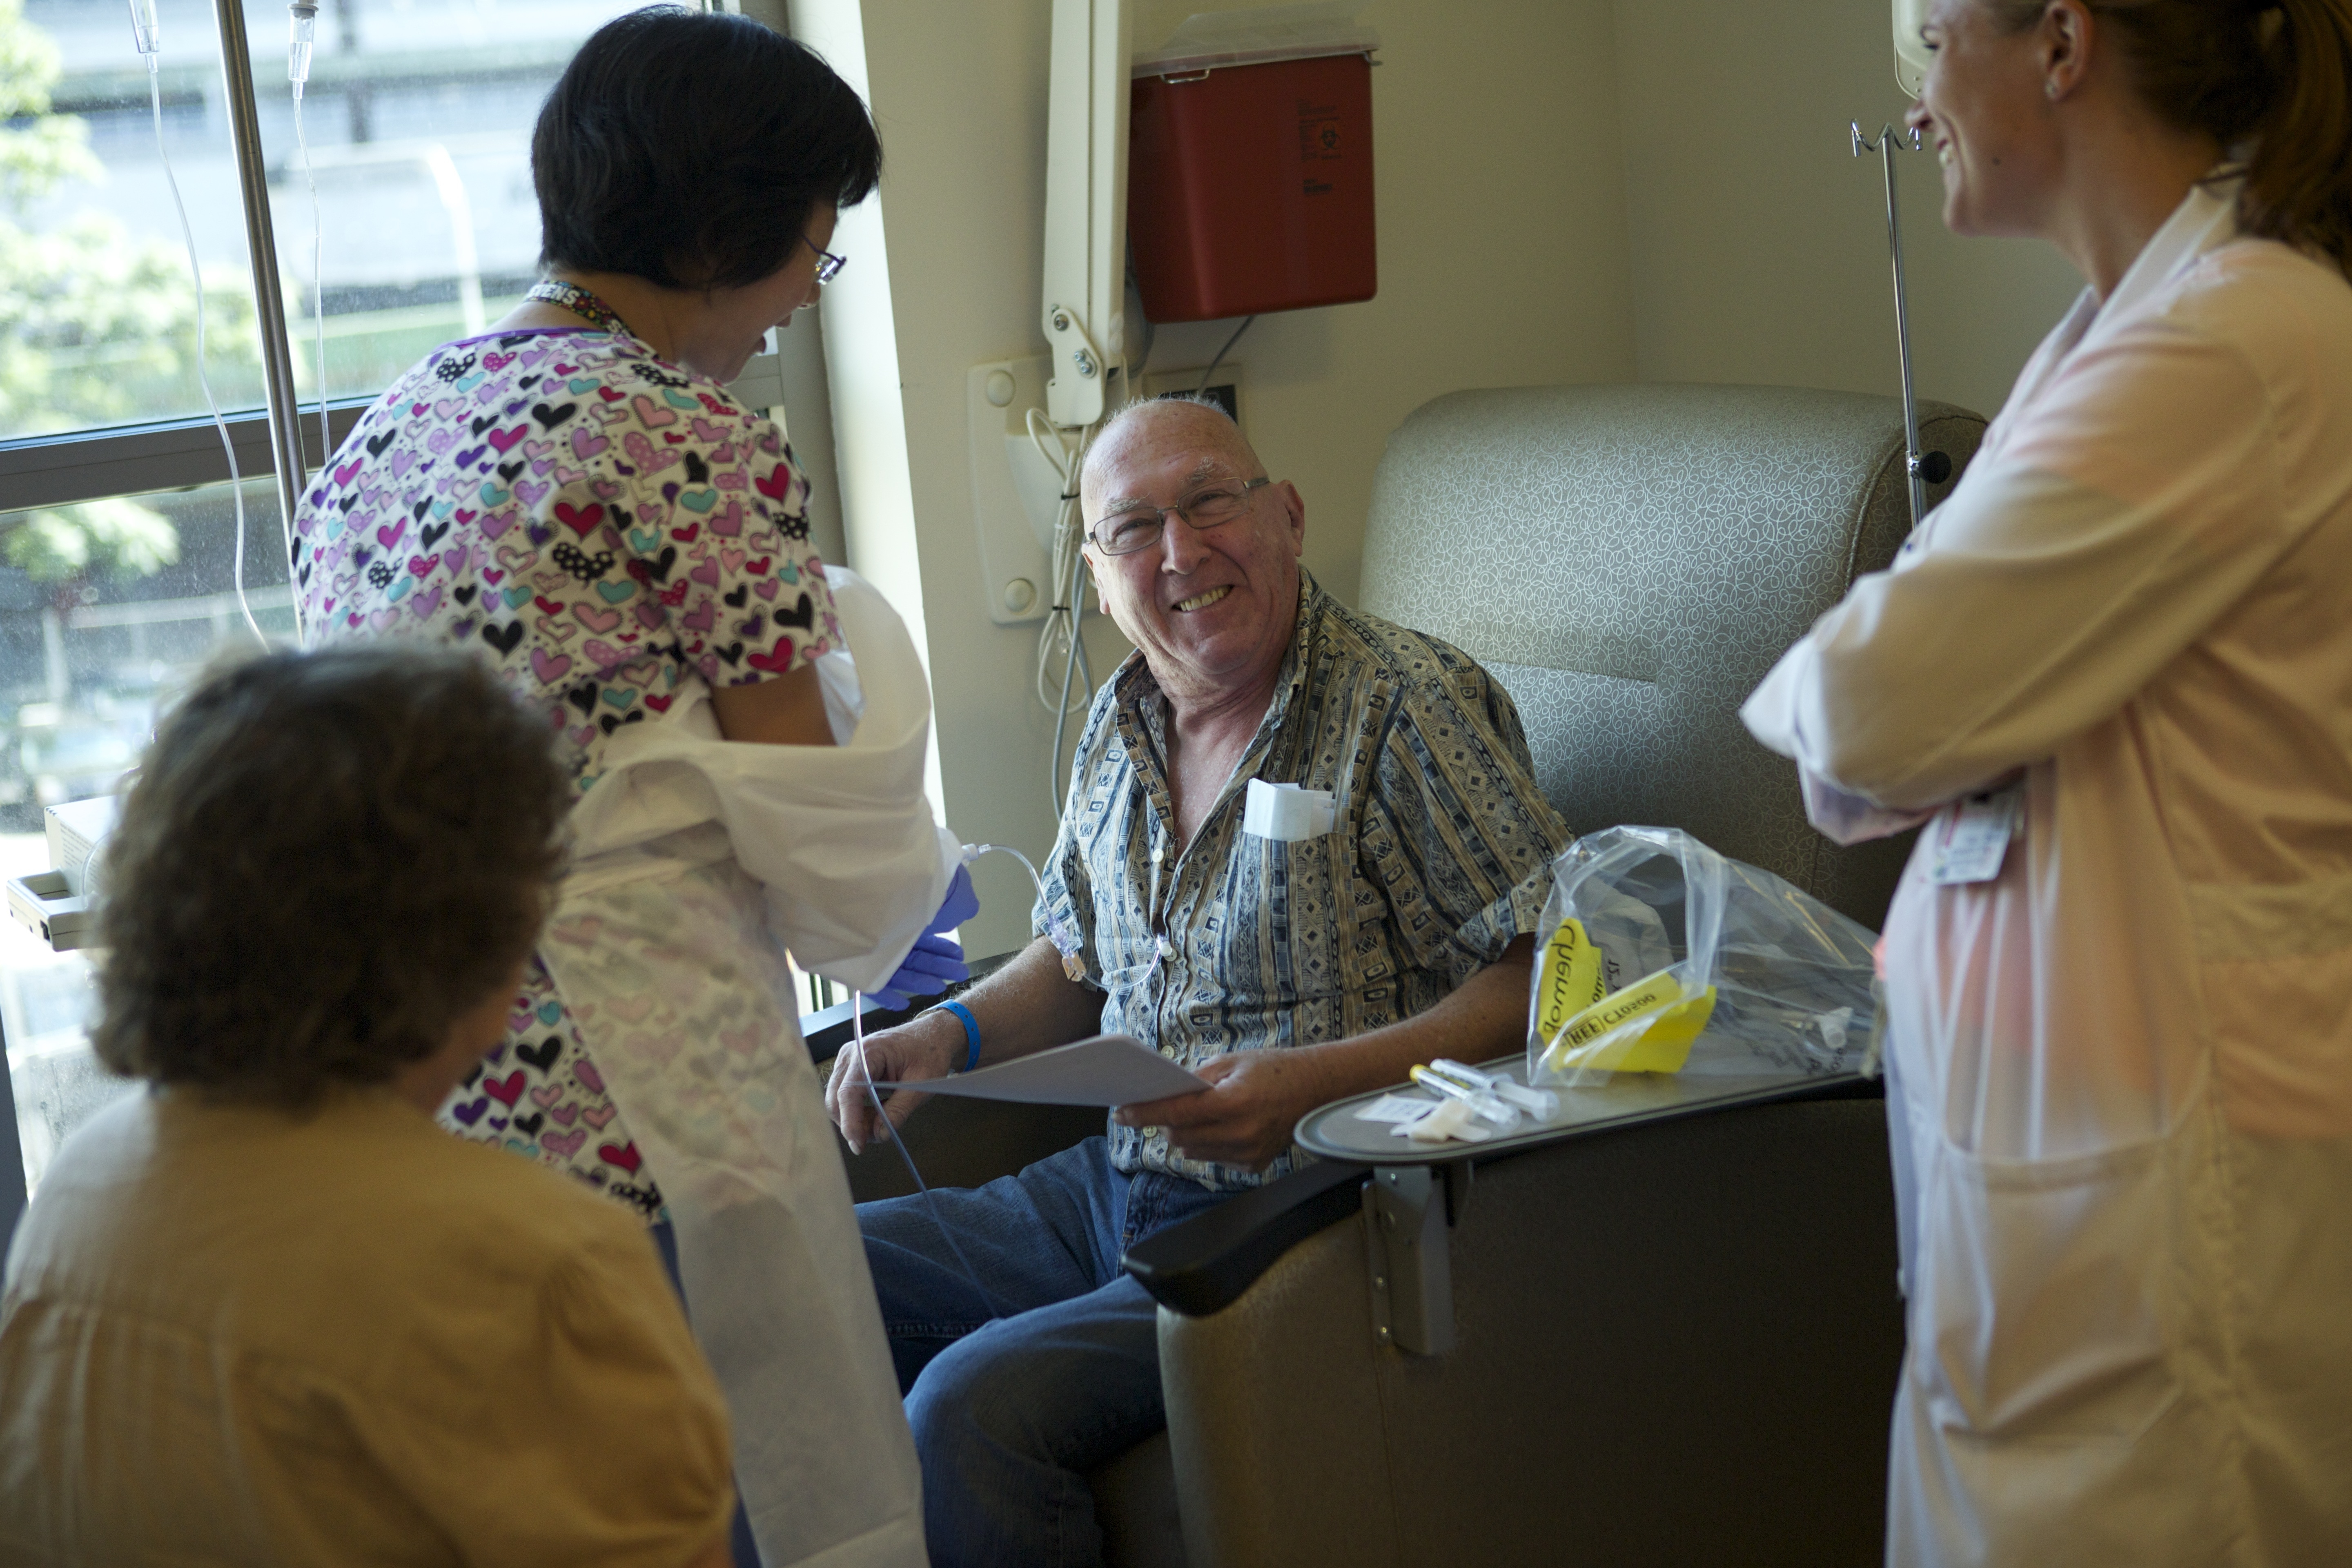 Smiling patient sitting in a chair surrounded by nurses